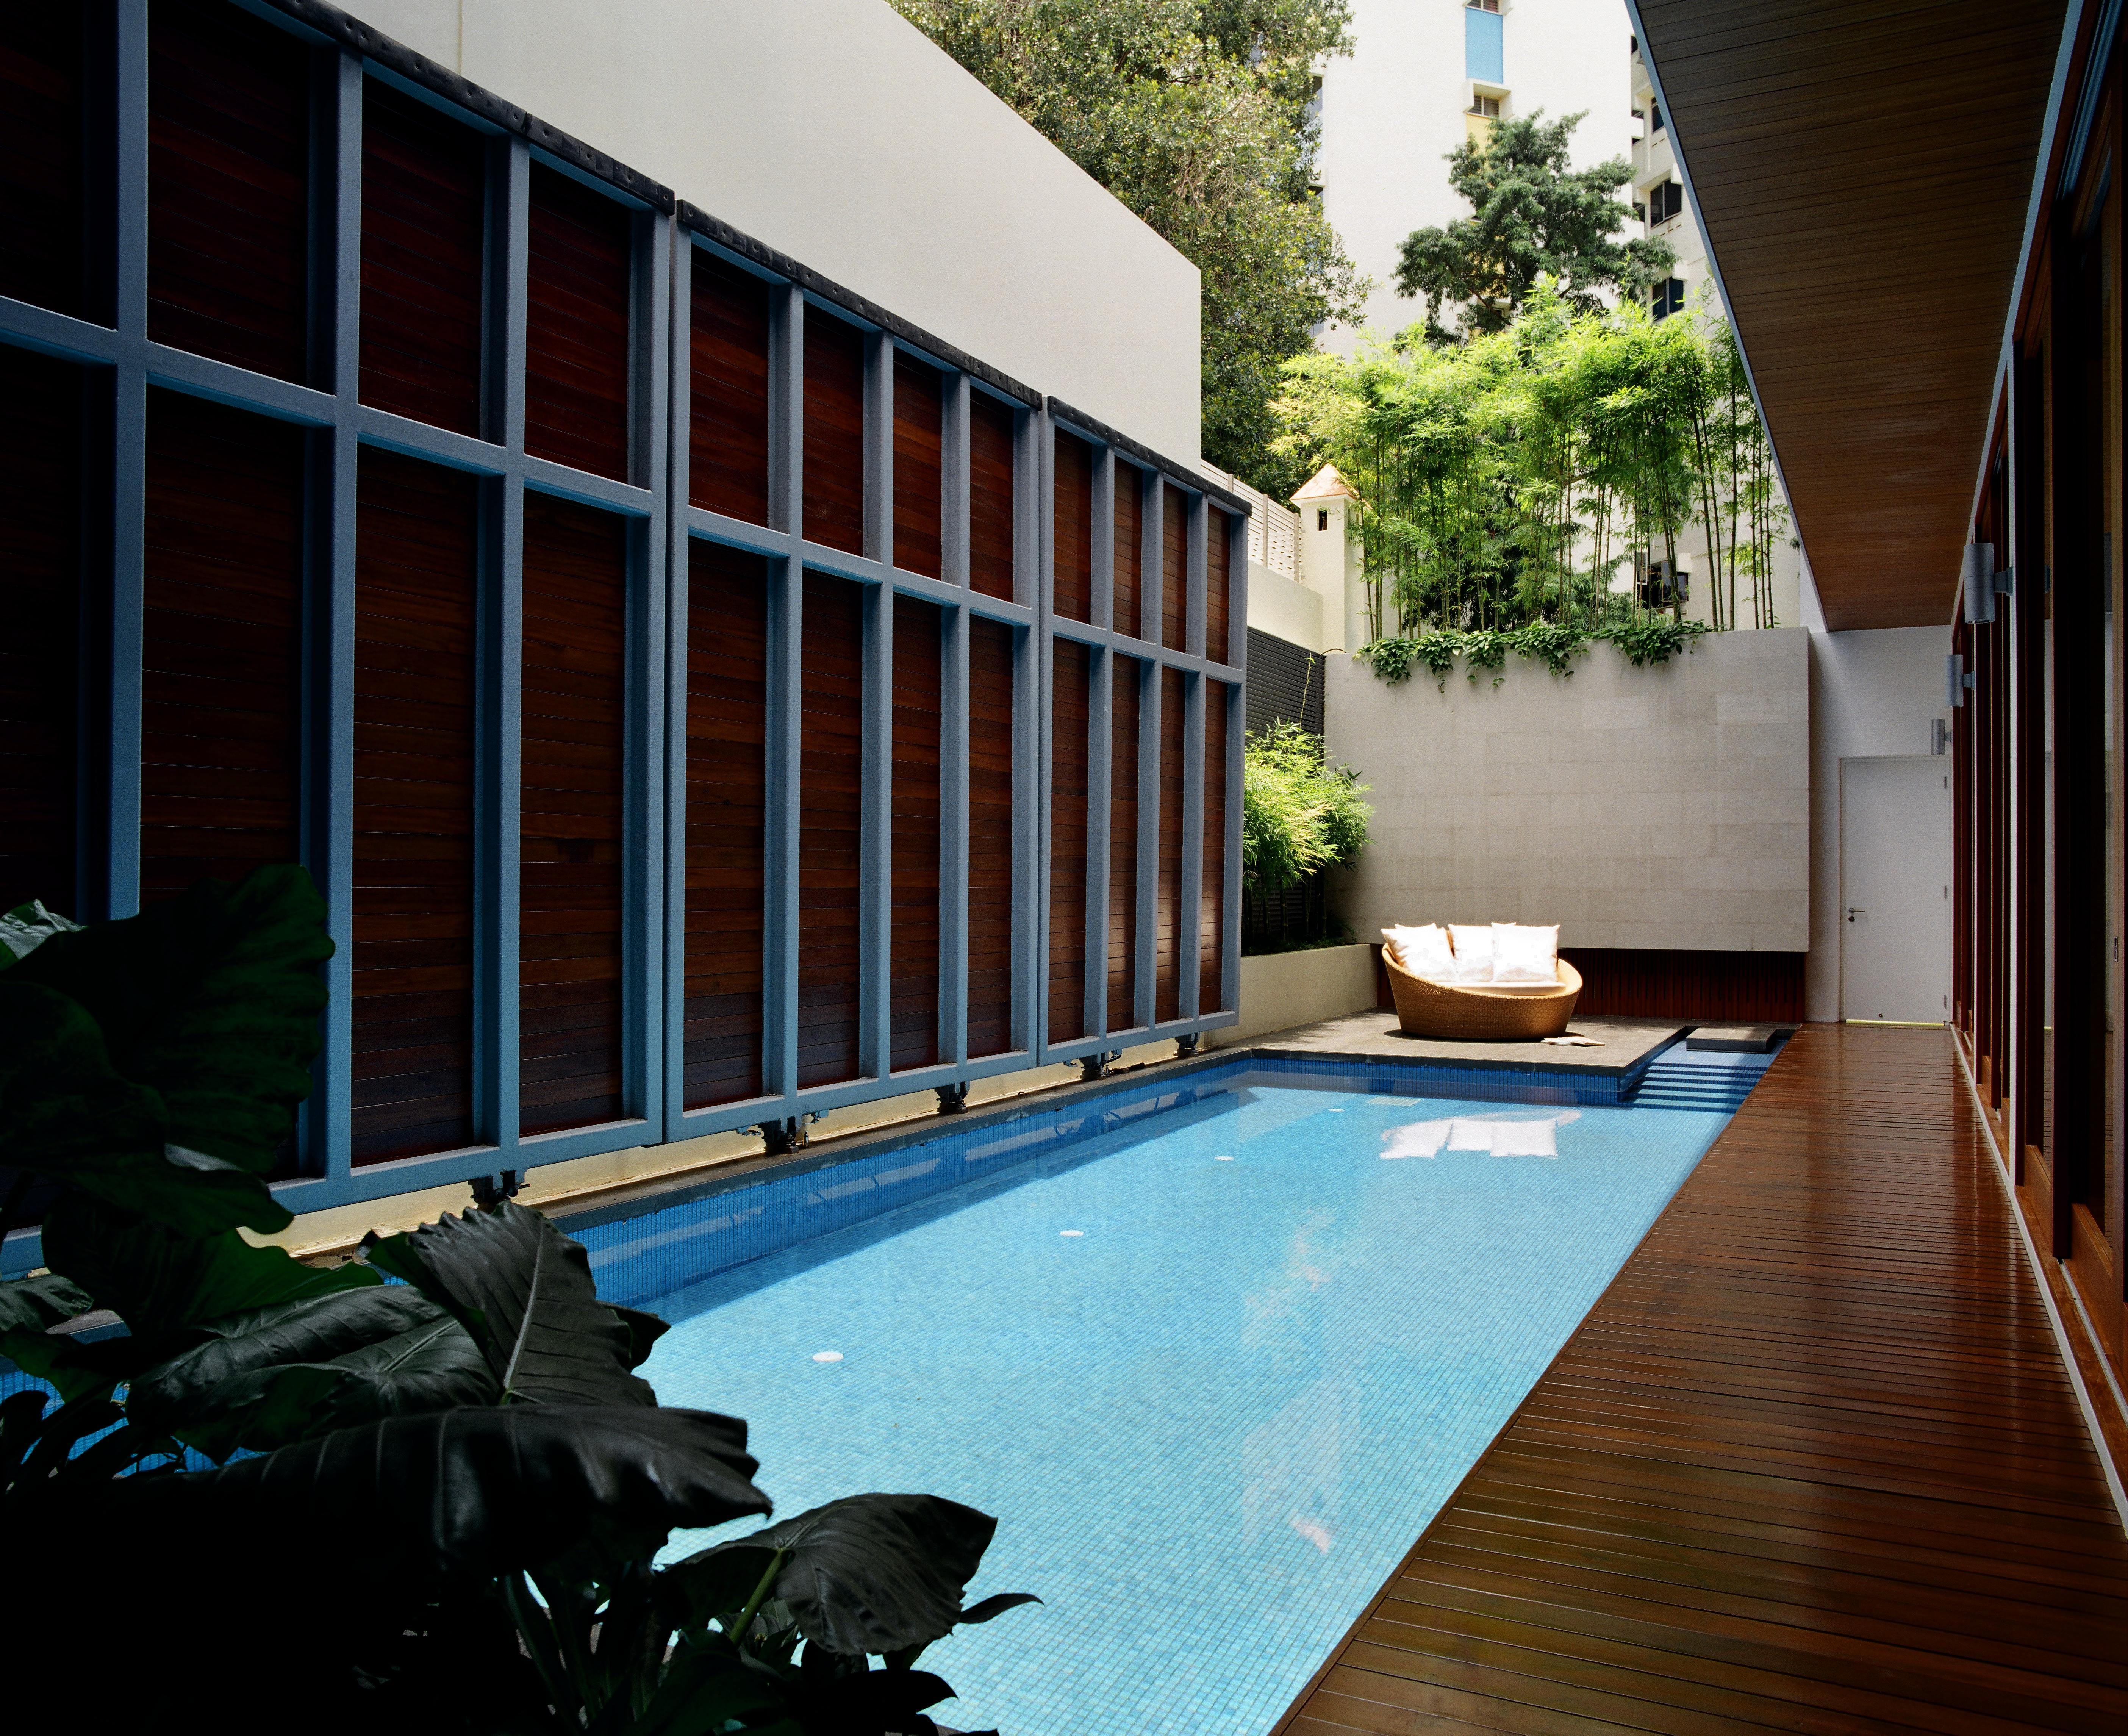 Viewed from the opposite end, we see the three immense metal and hardwood pool cover panels in the raised position, with bamboo copse standing atop brick exterior wall.